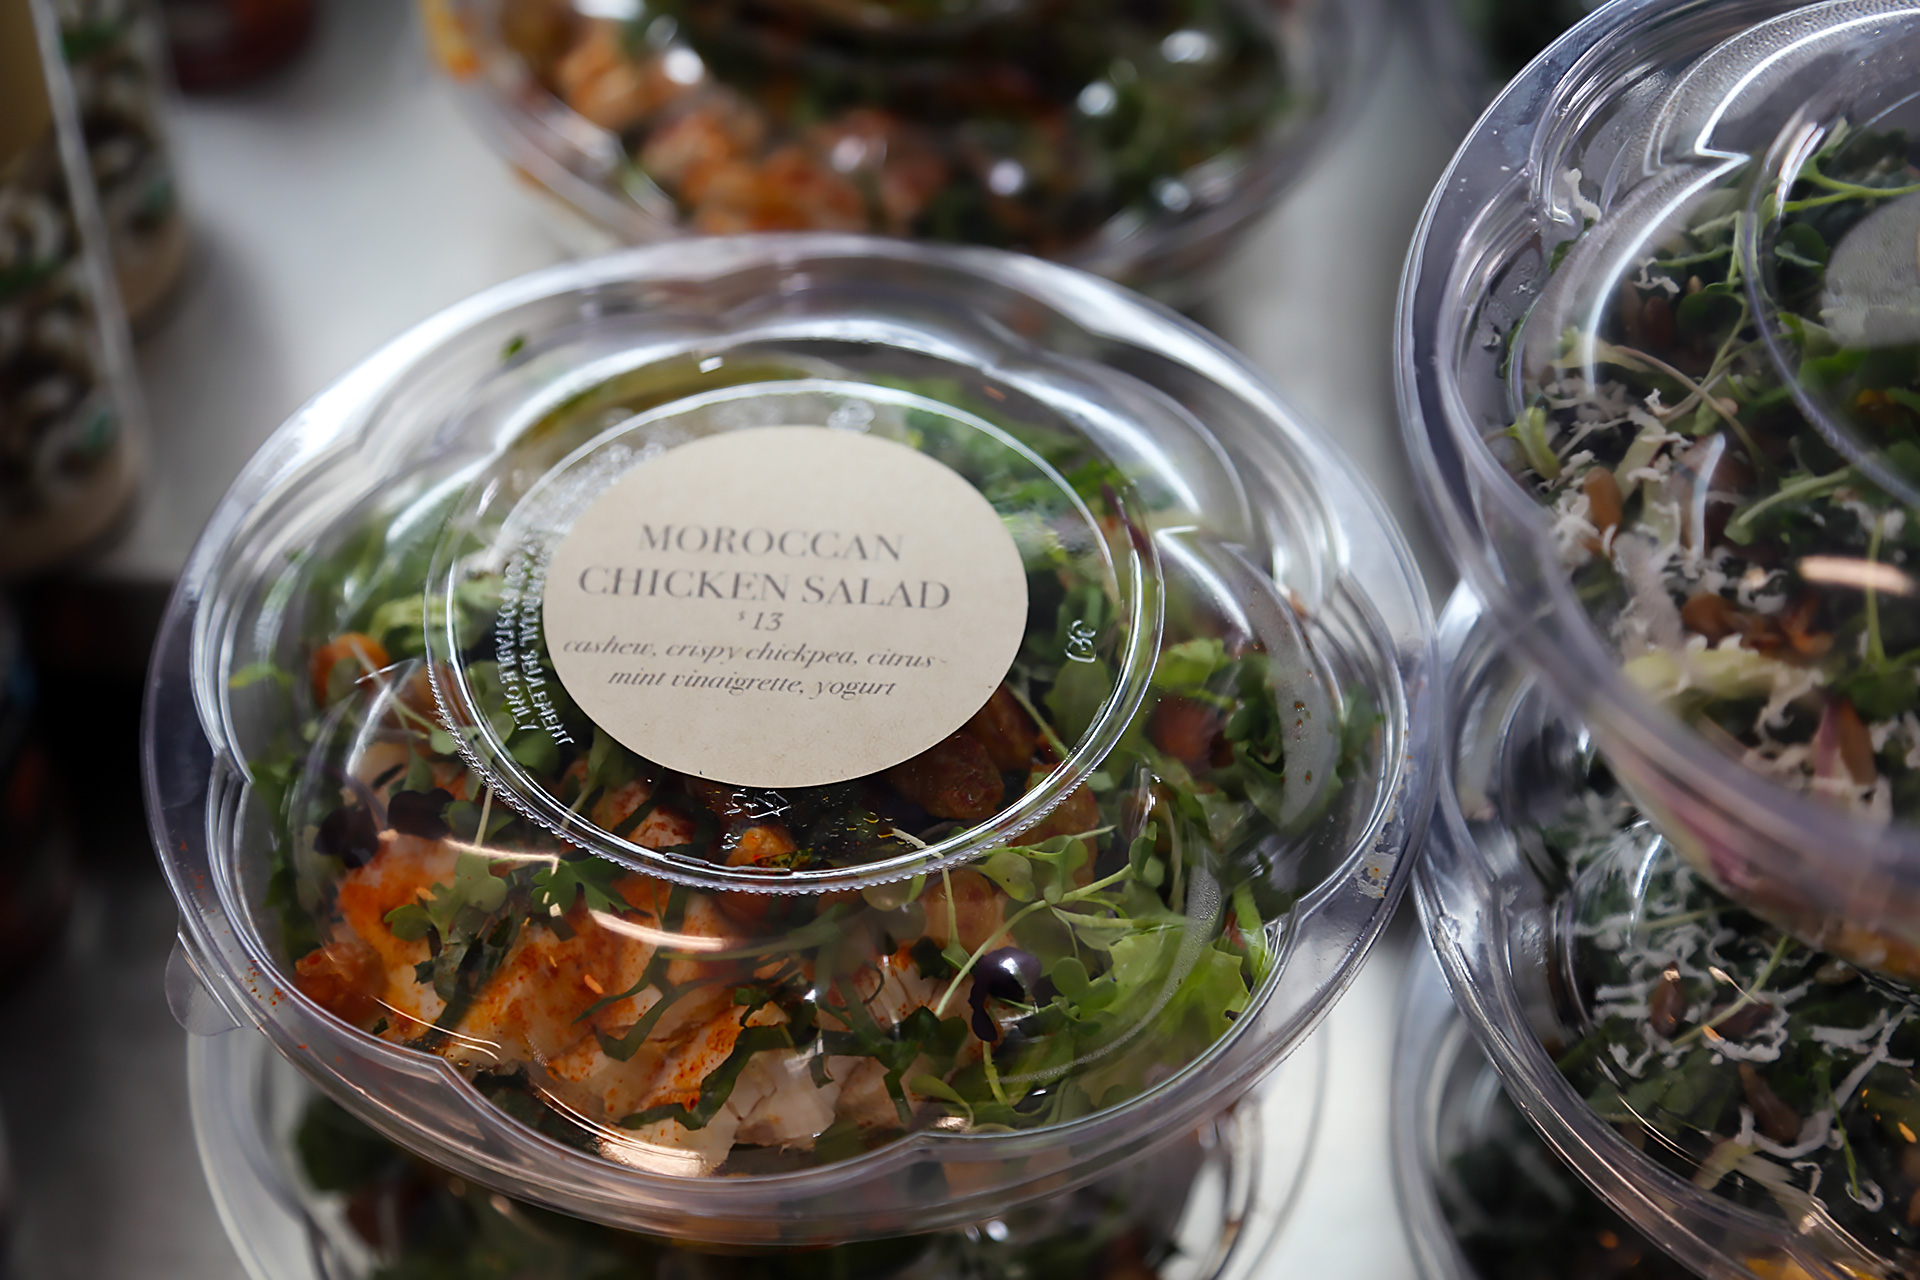 Food To-Go includes salads, sandos, fresh pasta and sauce.